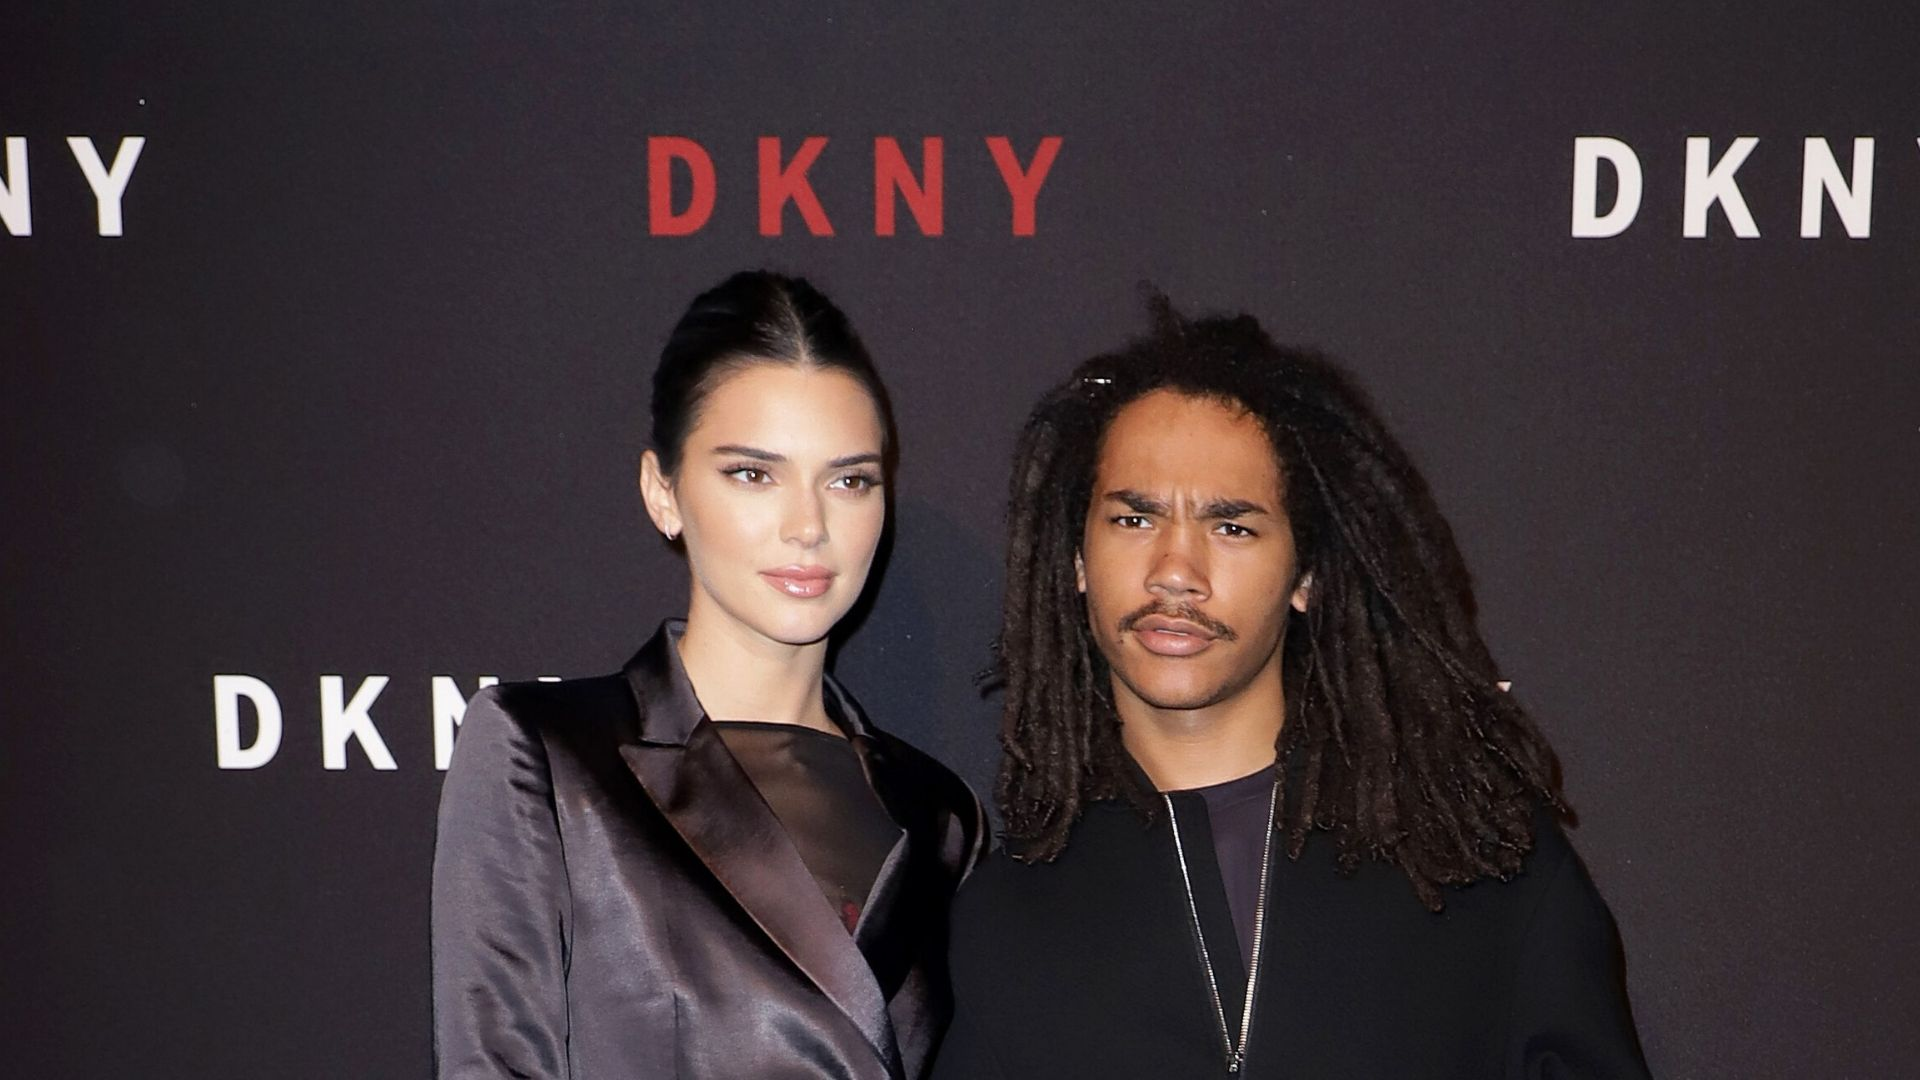 Kendall Jenner Shared A Photo With Kourtney Kardashian's Former Fling Luka Sabbat On Instagram